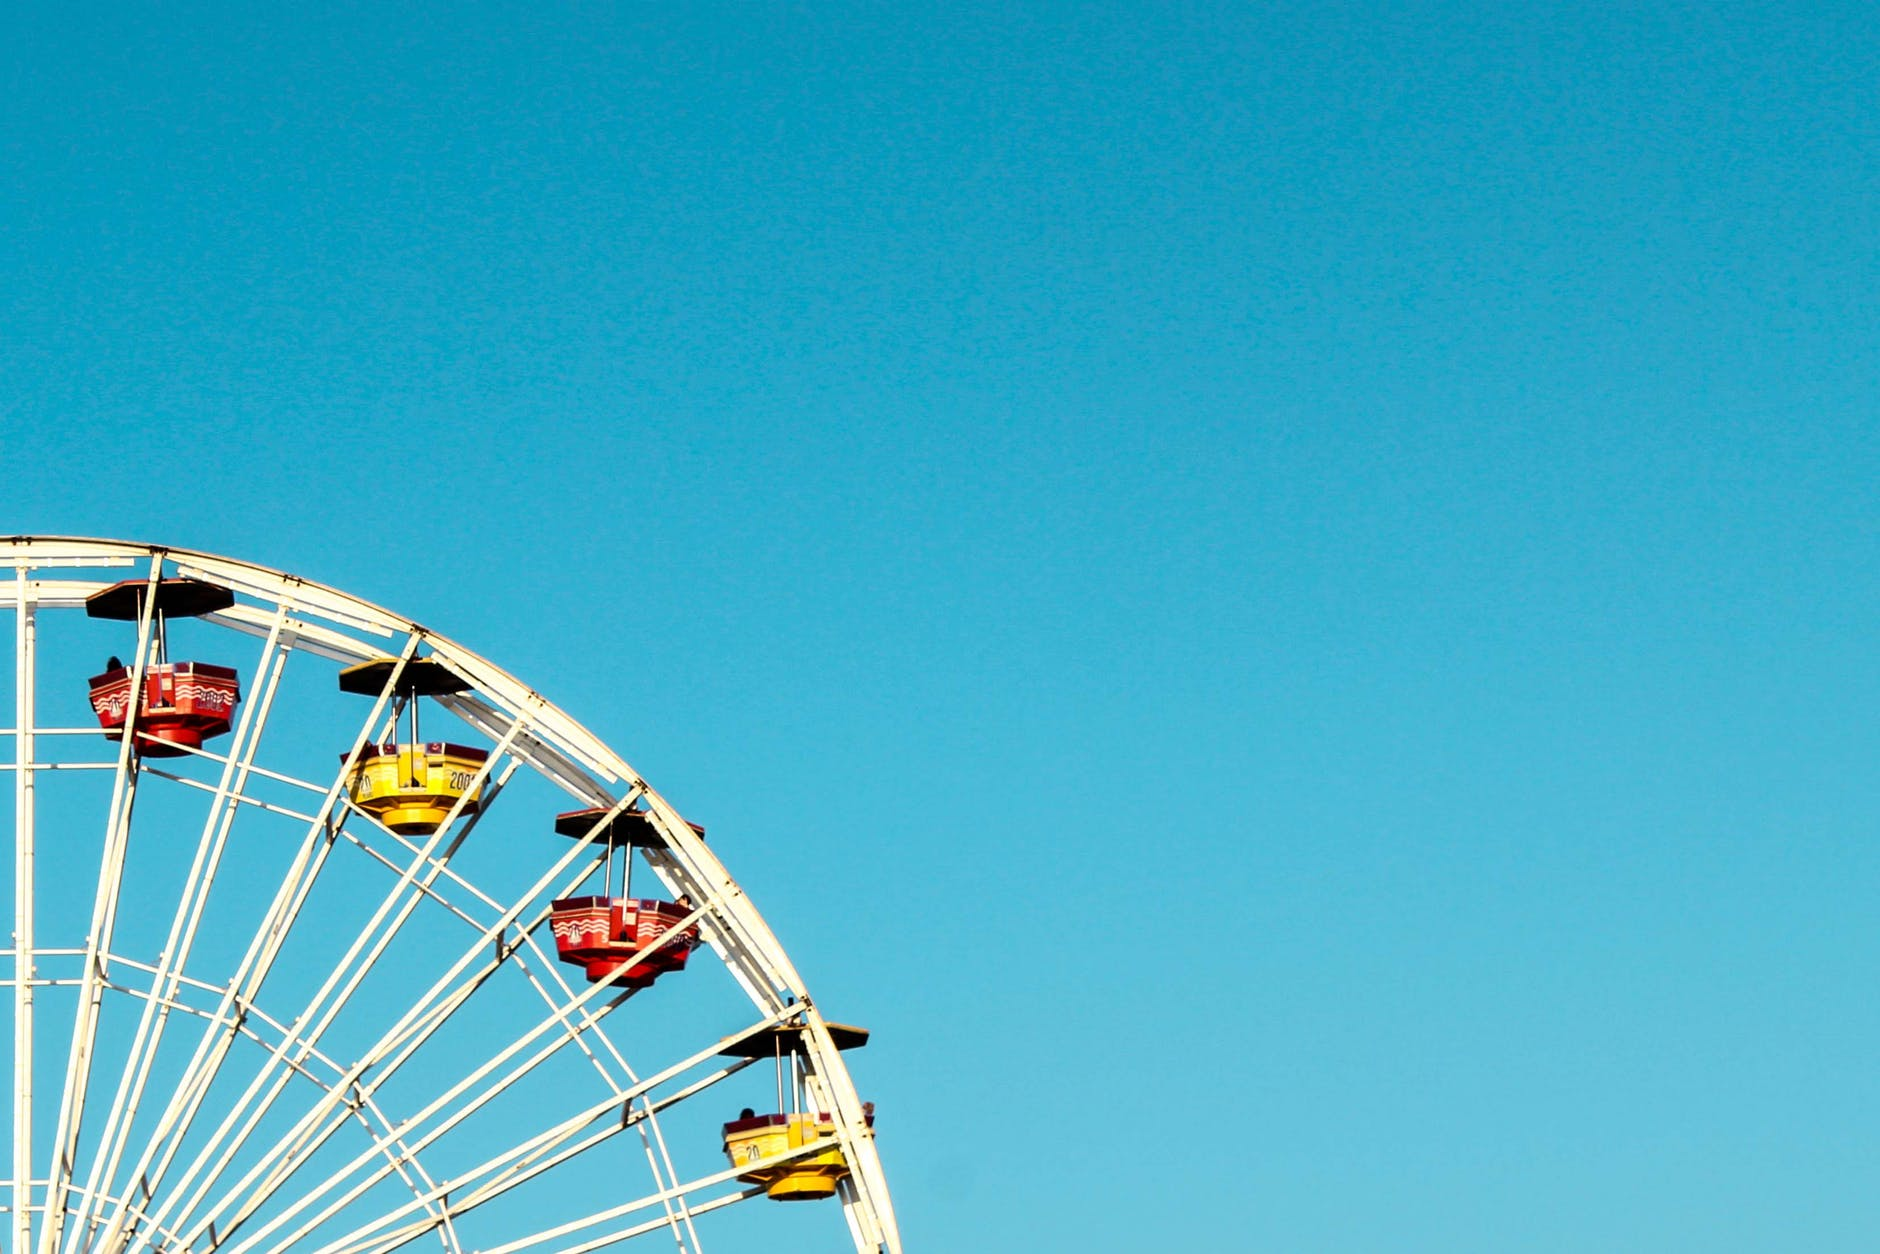 date ideas to help you bond: Feris wheel in sunshine.